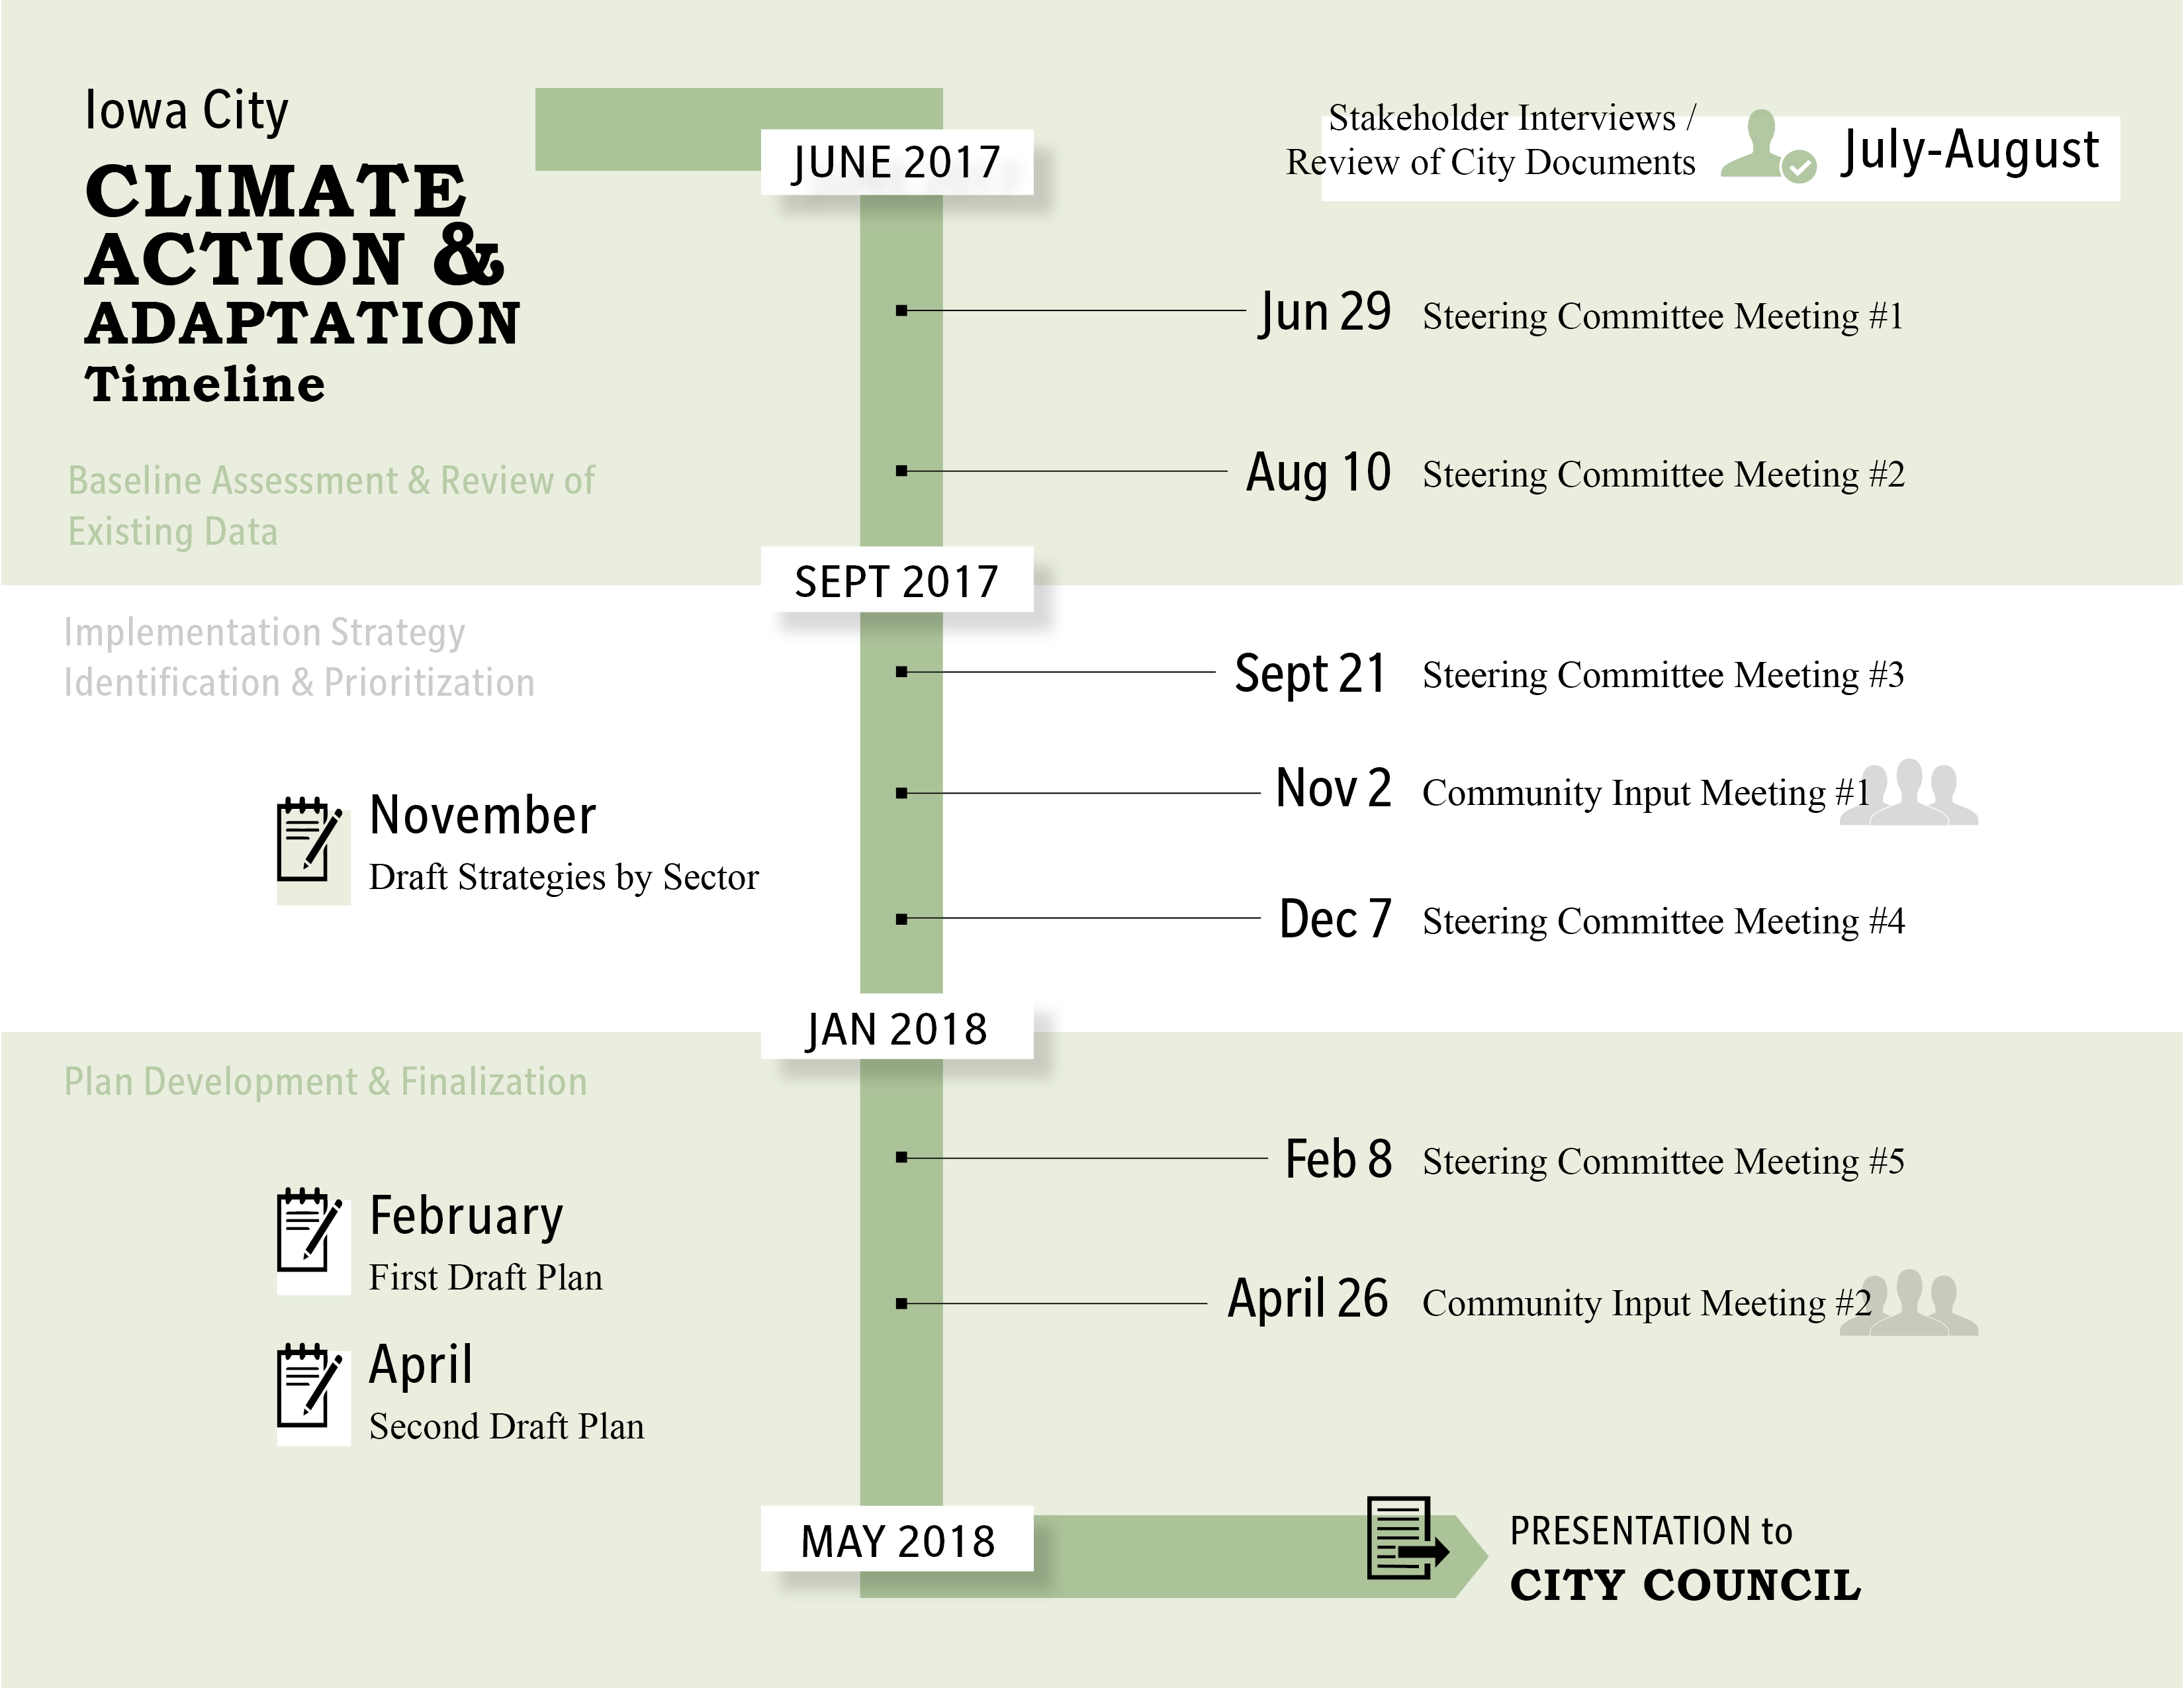 A timeline graphic for the Climate Action & Adaptation plan